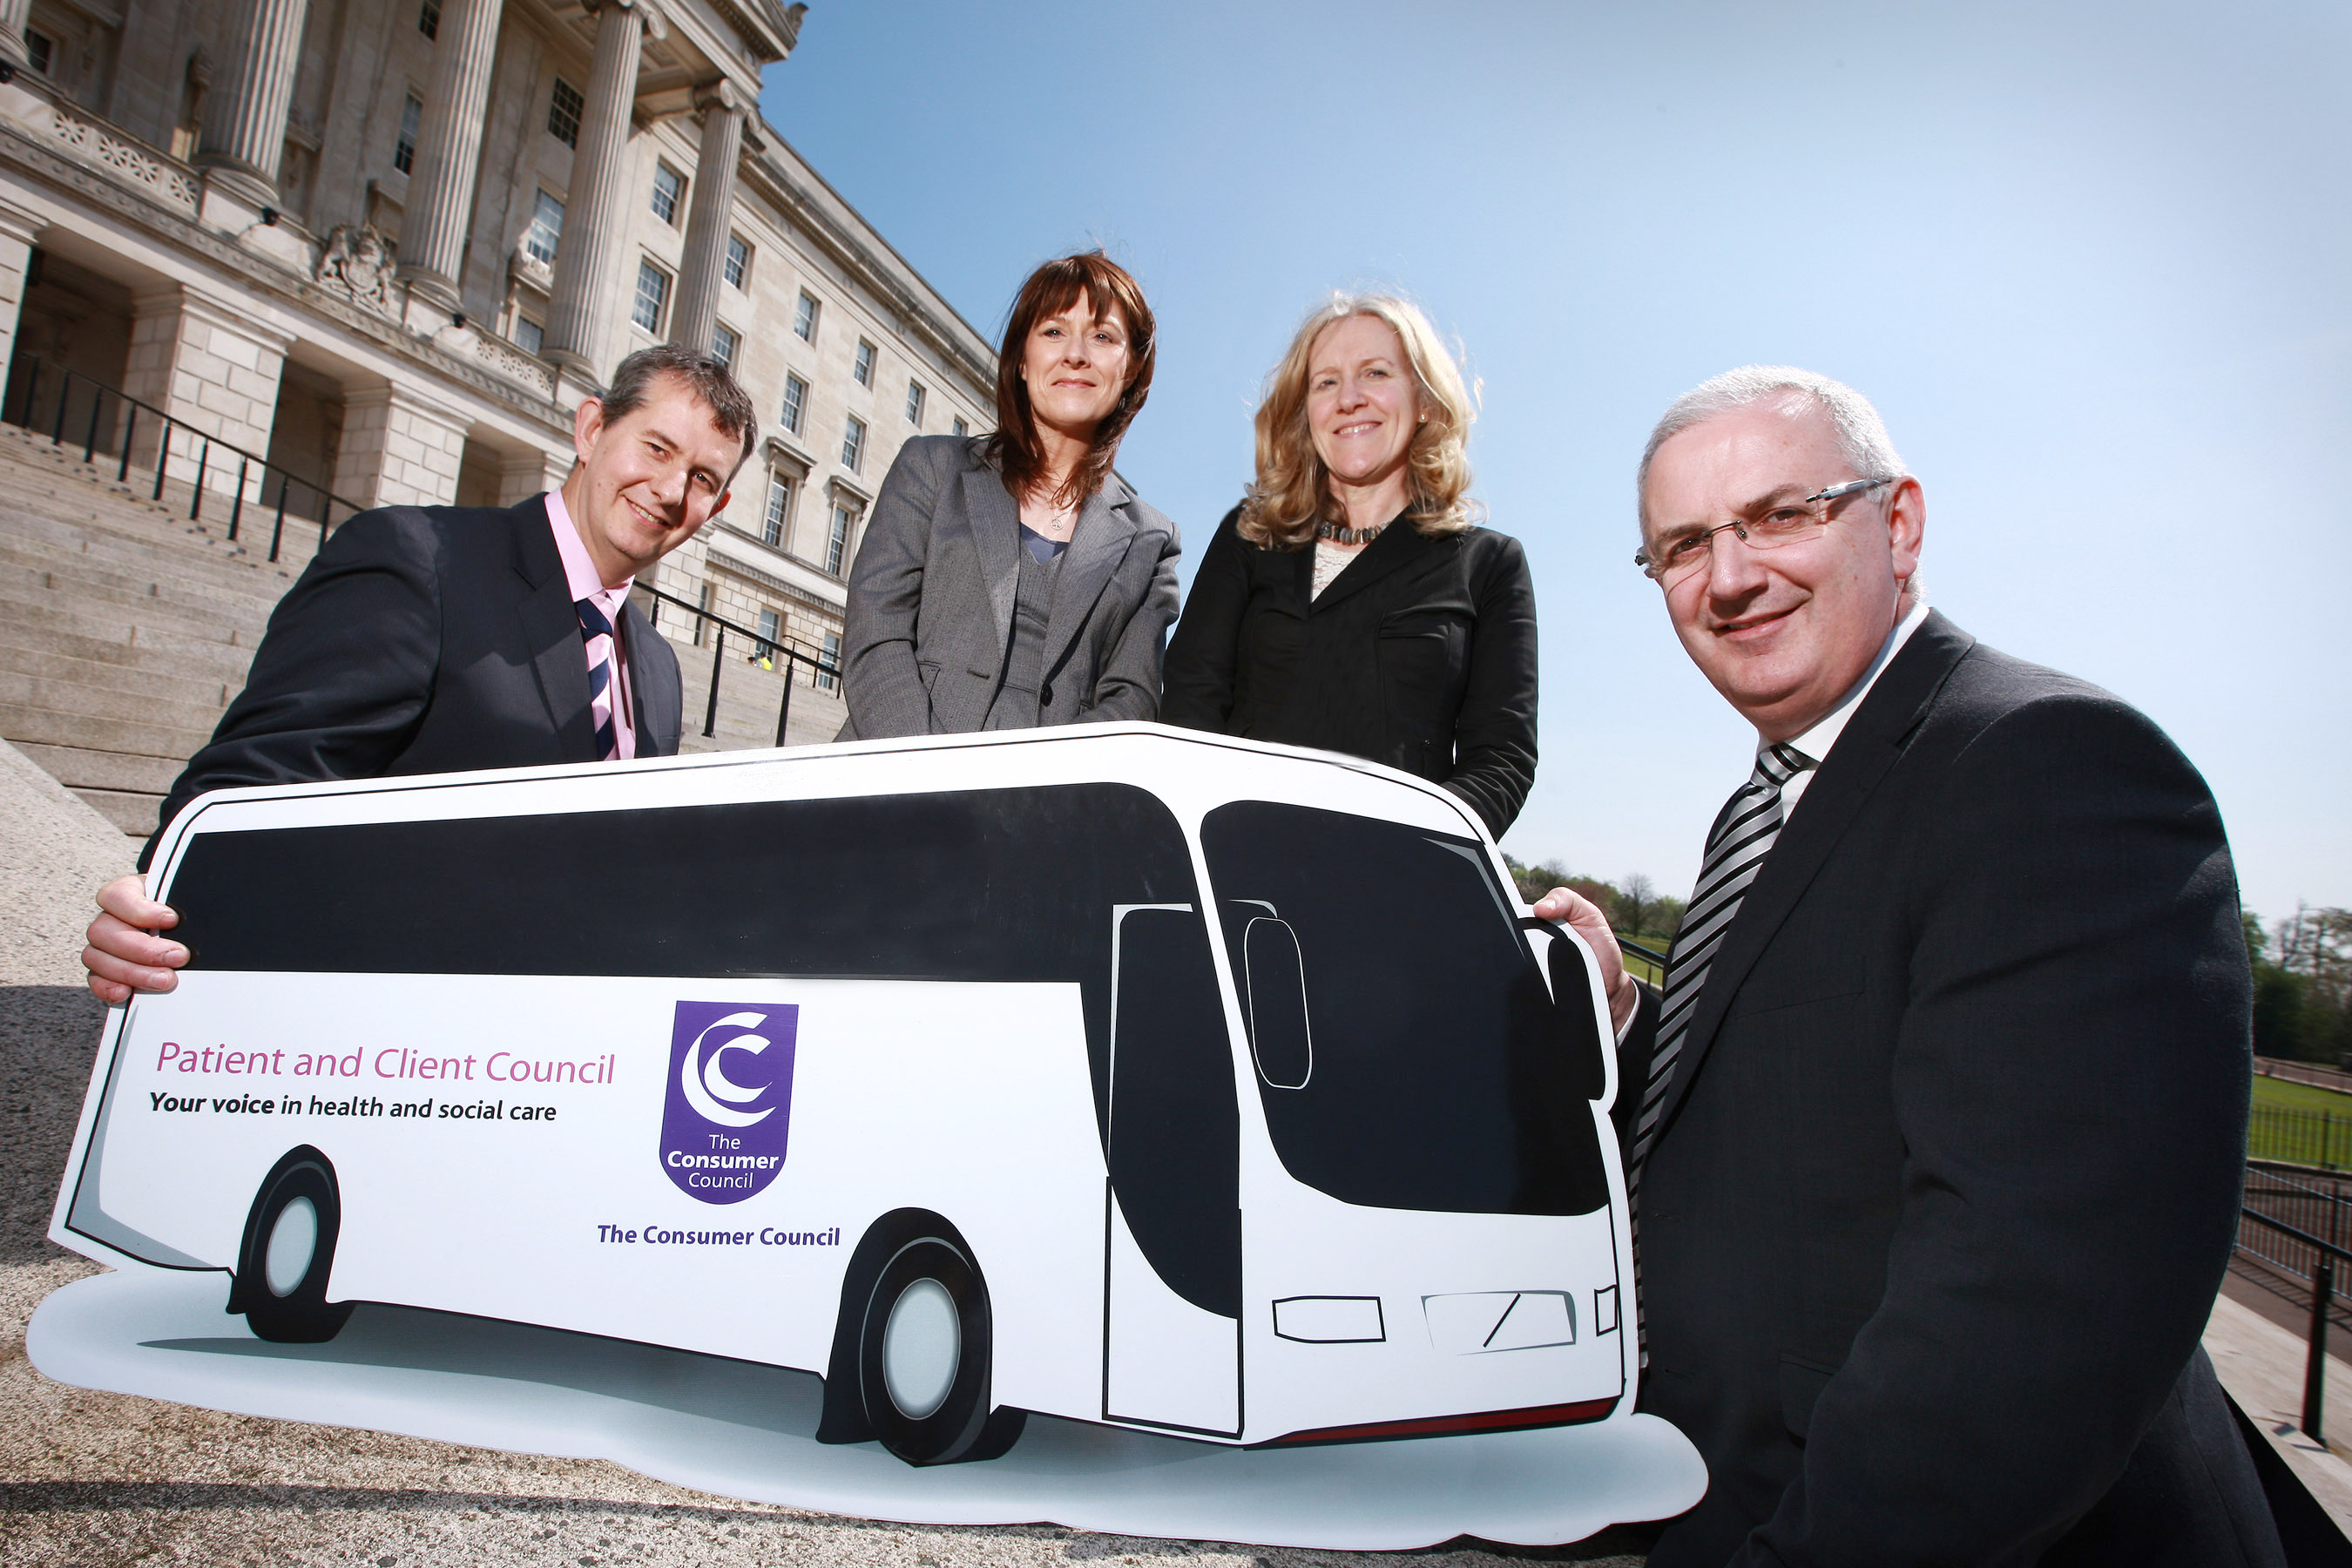 Pictured at the launch of the Transport Issues in Accessing Health and Social Services Report are Edwin Poots, Minister for Health, Social Services and Public Safety; Antoinette McKeown, Chief Executive of the Consumer Council ; Maeve Hully, Chief Executive of the Patient and Client Council and Danny Kennedy, Minister for Regional Development.